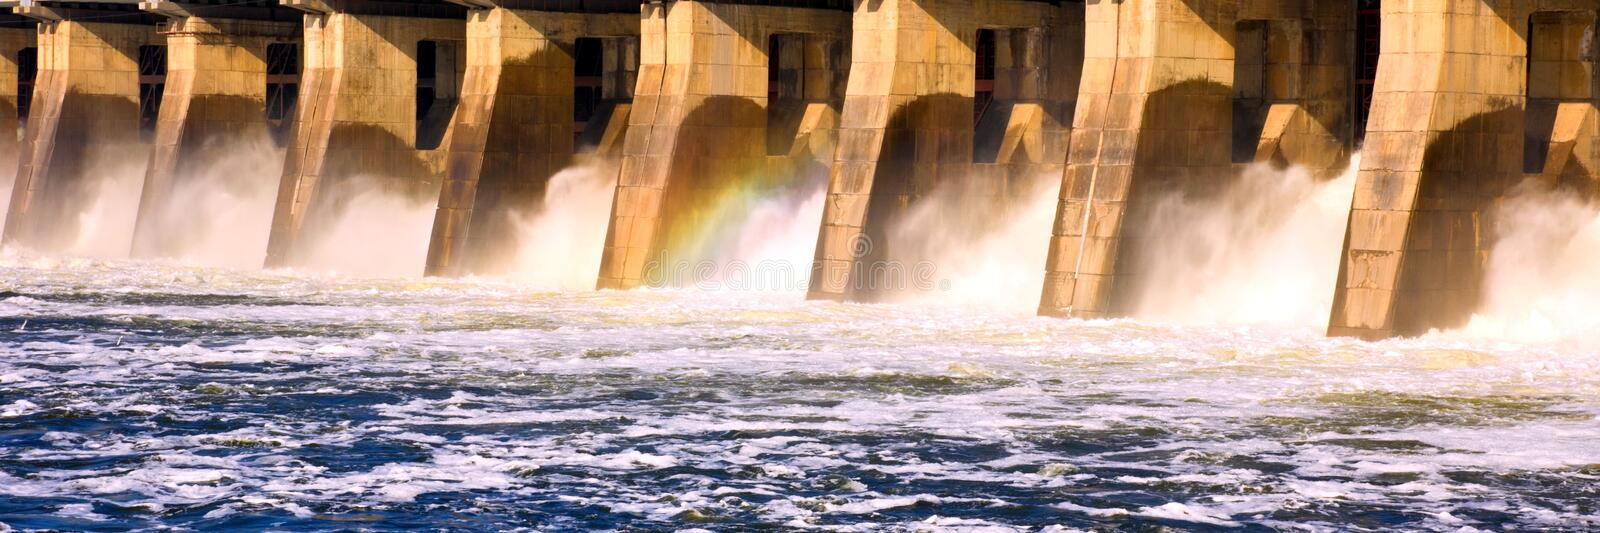 The Great Spring Water Discharge at the Zhiguli Dam near the city of Tolyatti on the Volga River. royalty free stock photo